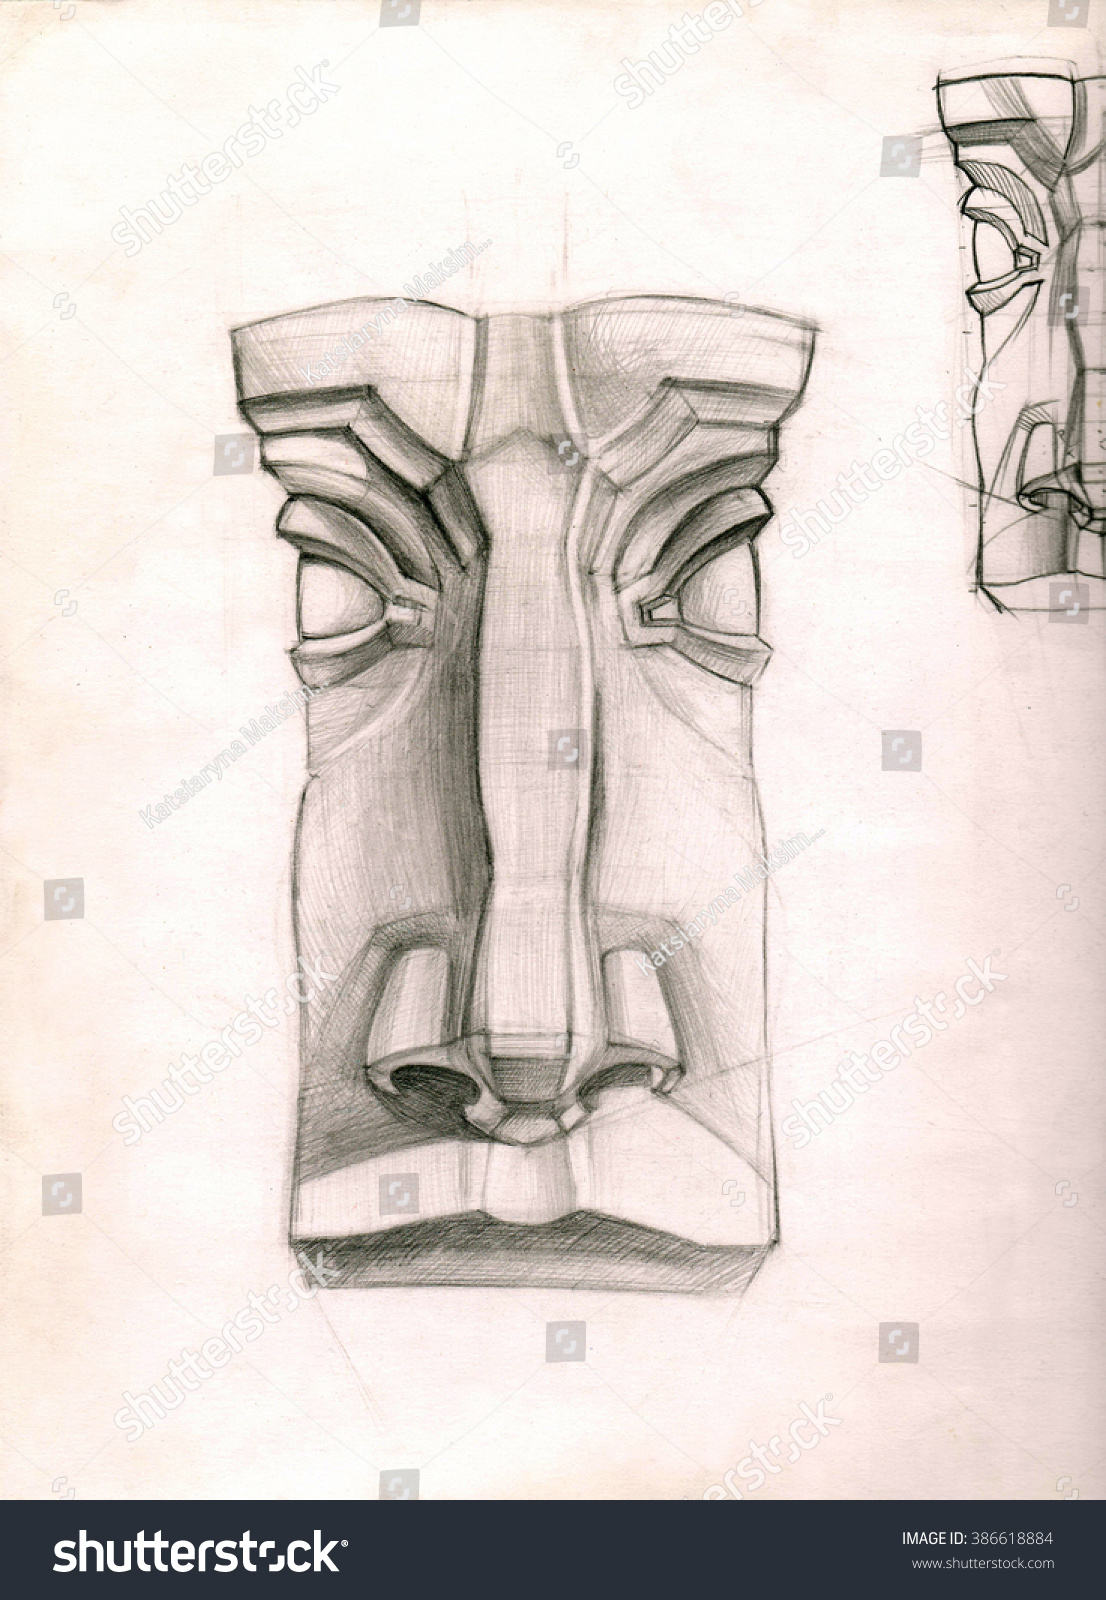 Classic pencil drawing of the nose